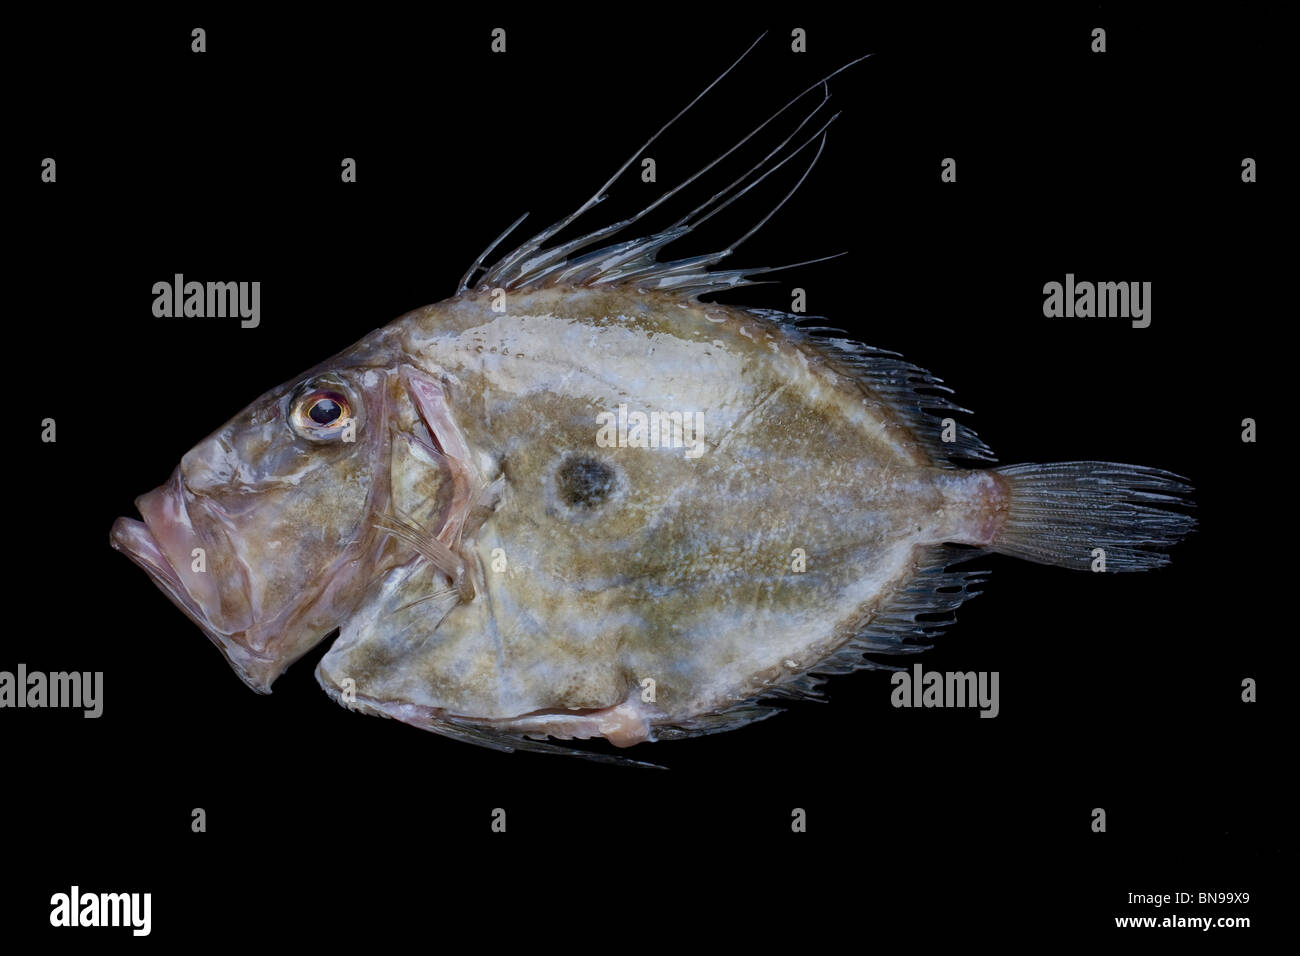 John dory sea fish also known as St Pierre fish - Stock Image